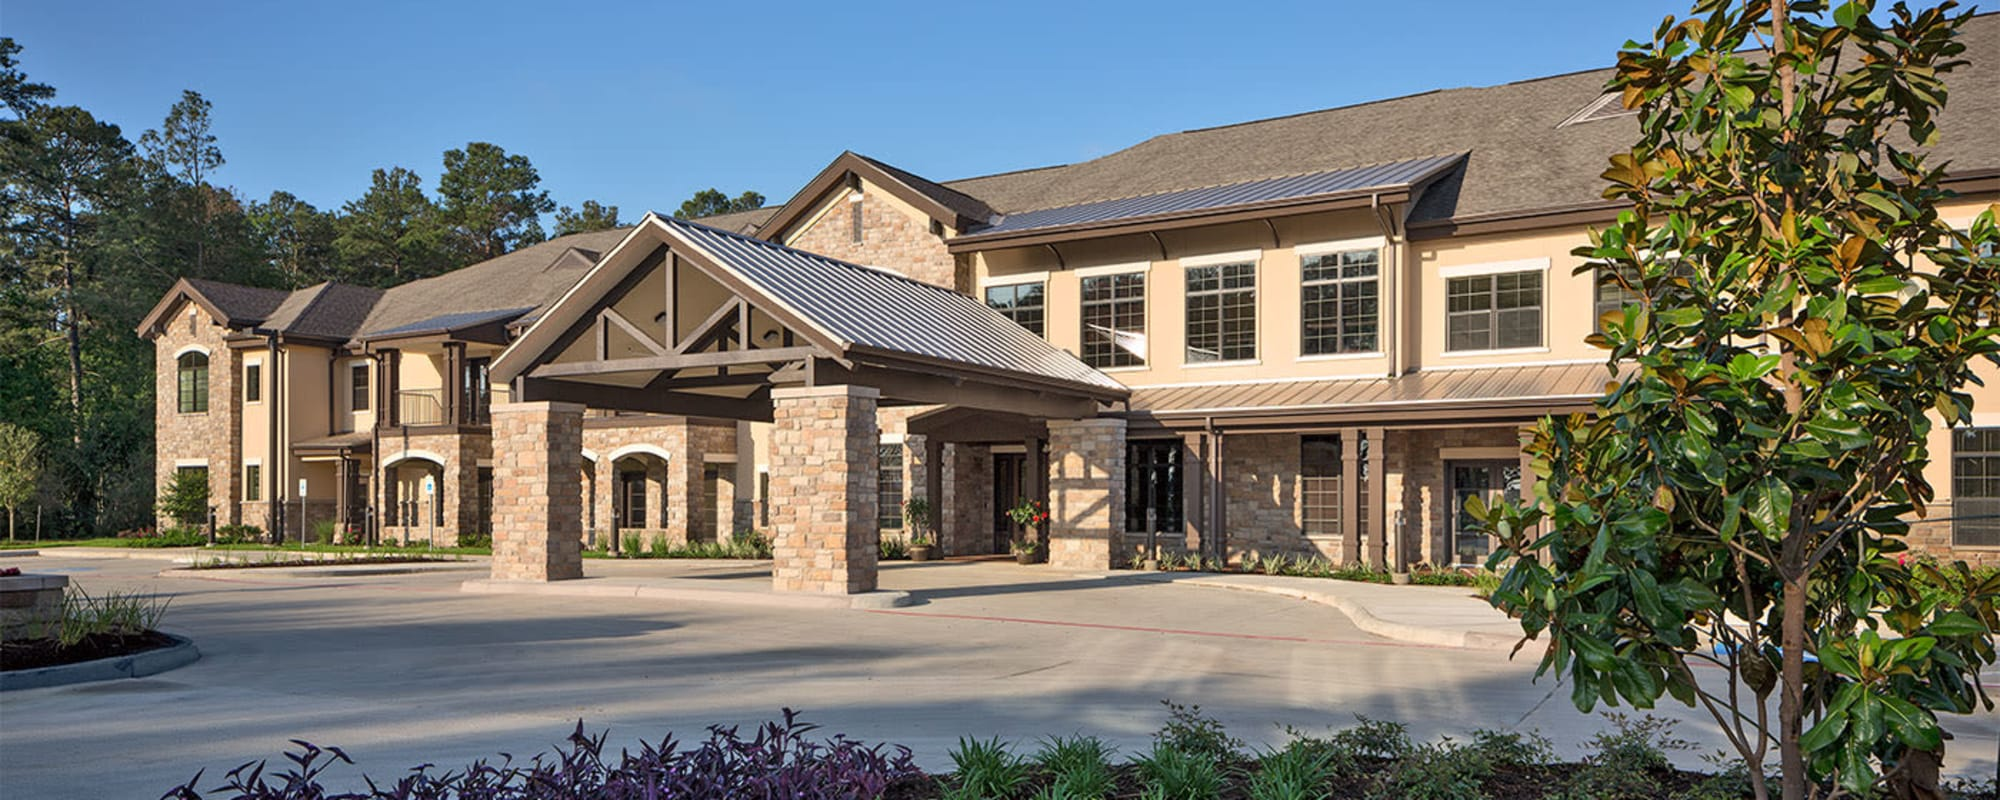 Floor Plans of Spring Creek Village in Spring, Texas